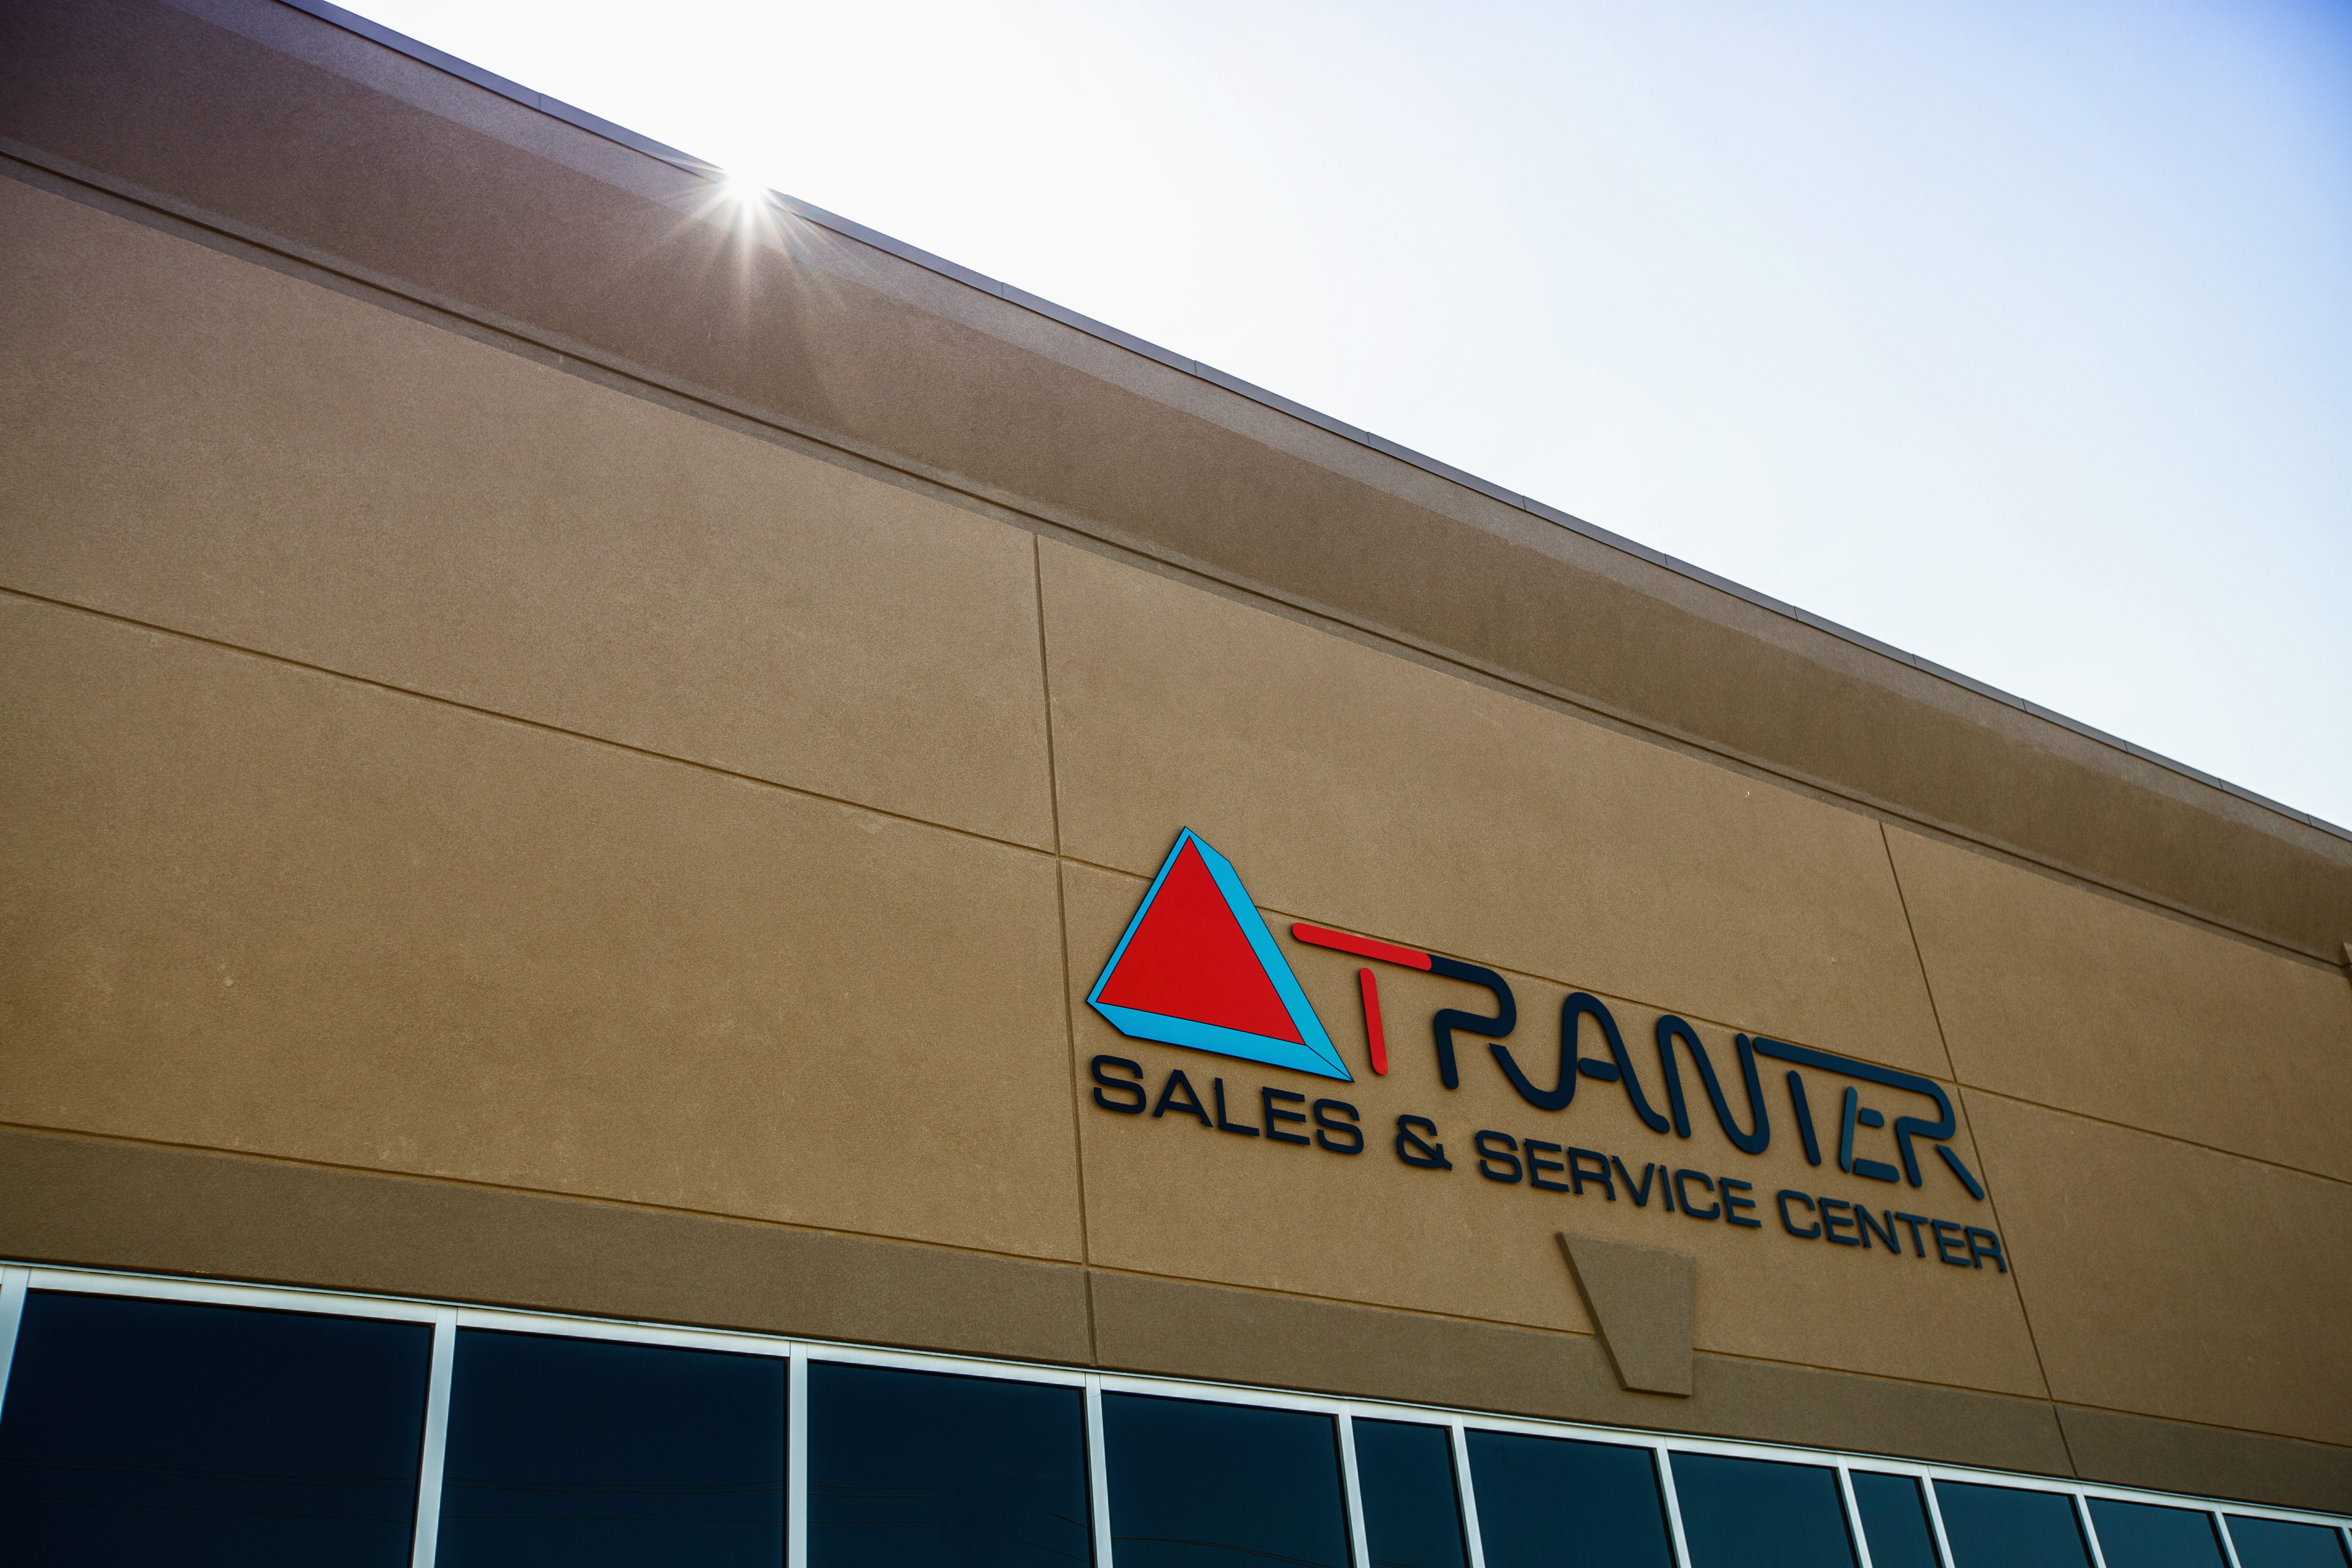 Tranter Sales and Service sign on building